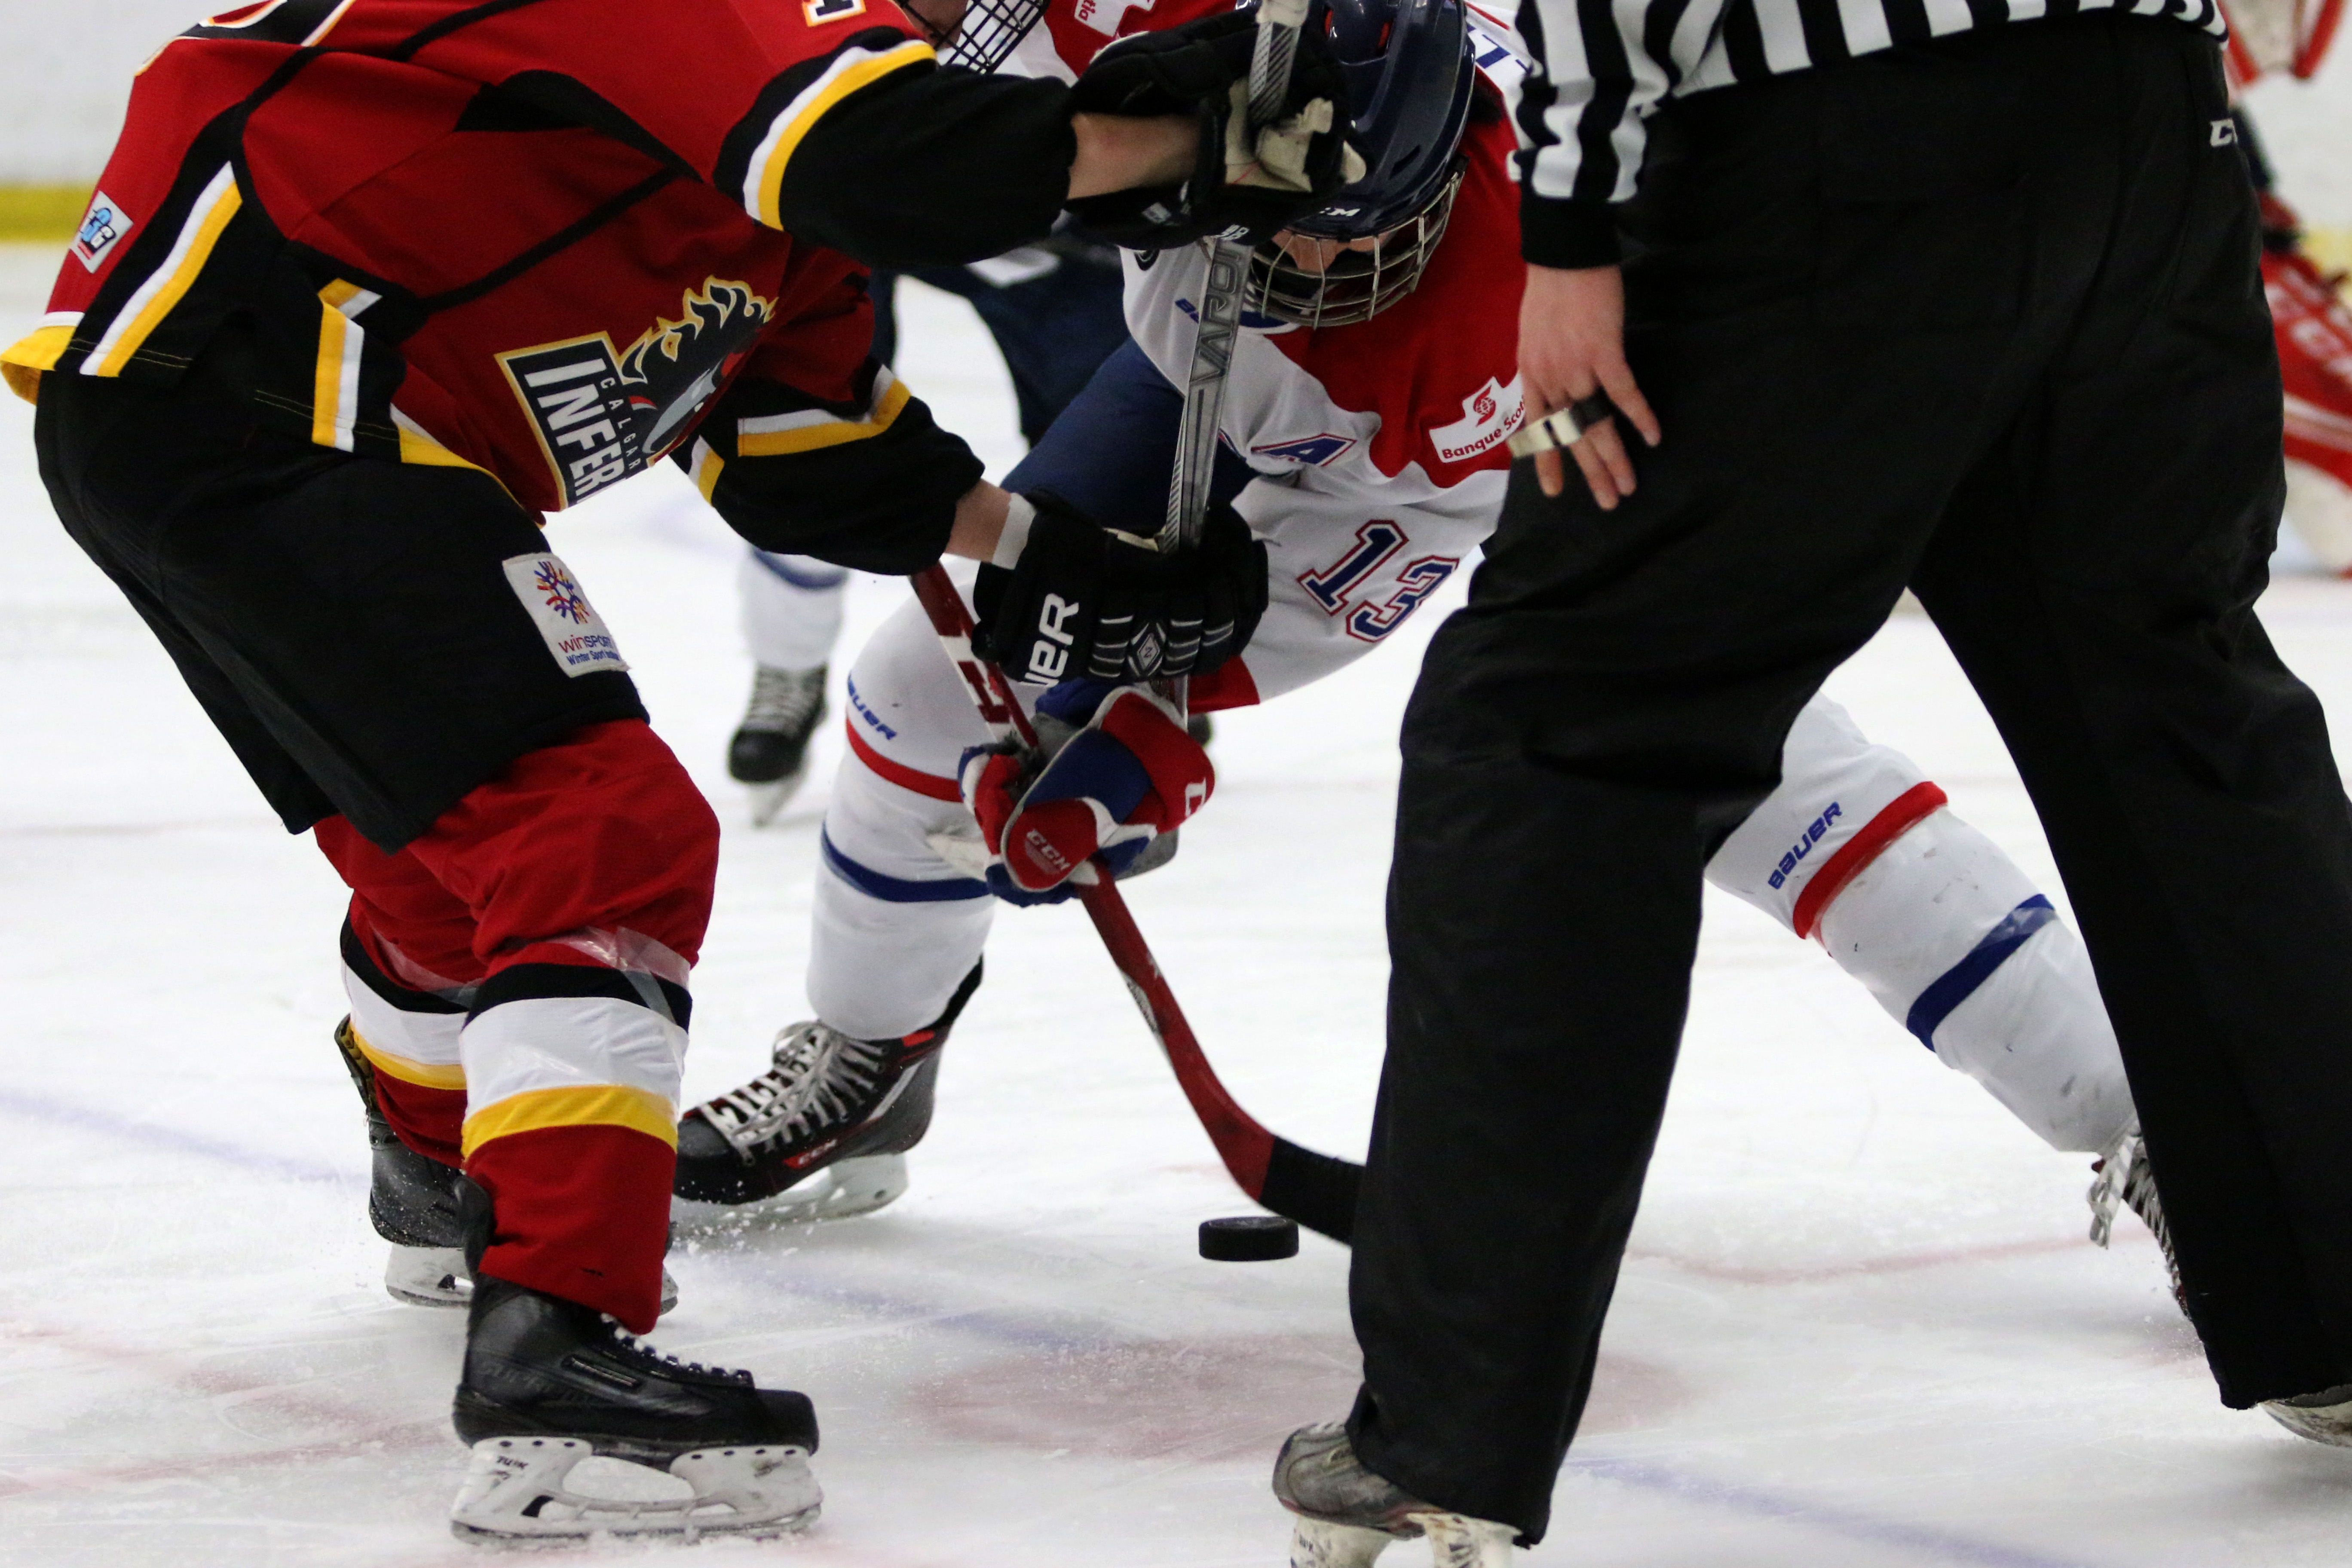 The final faceoff of the CWHL season is happening Sunday afternoon between Les Canadiennes de Montreal and the Calgary Inferno. Here's a look at what to expect with both teams.